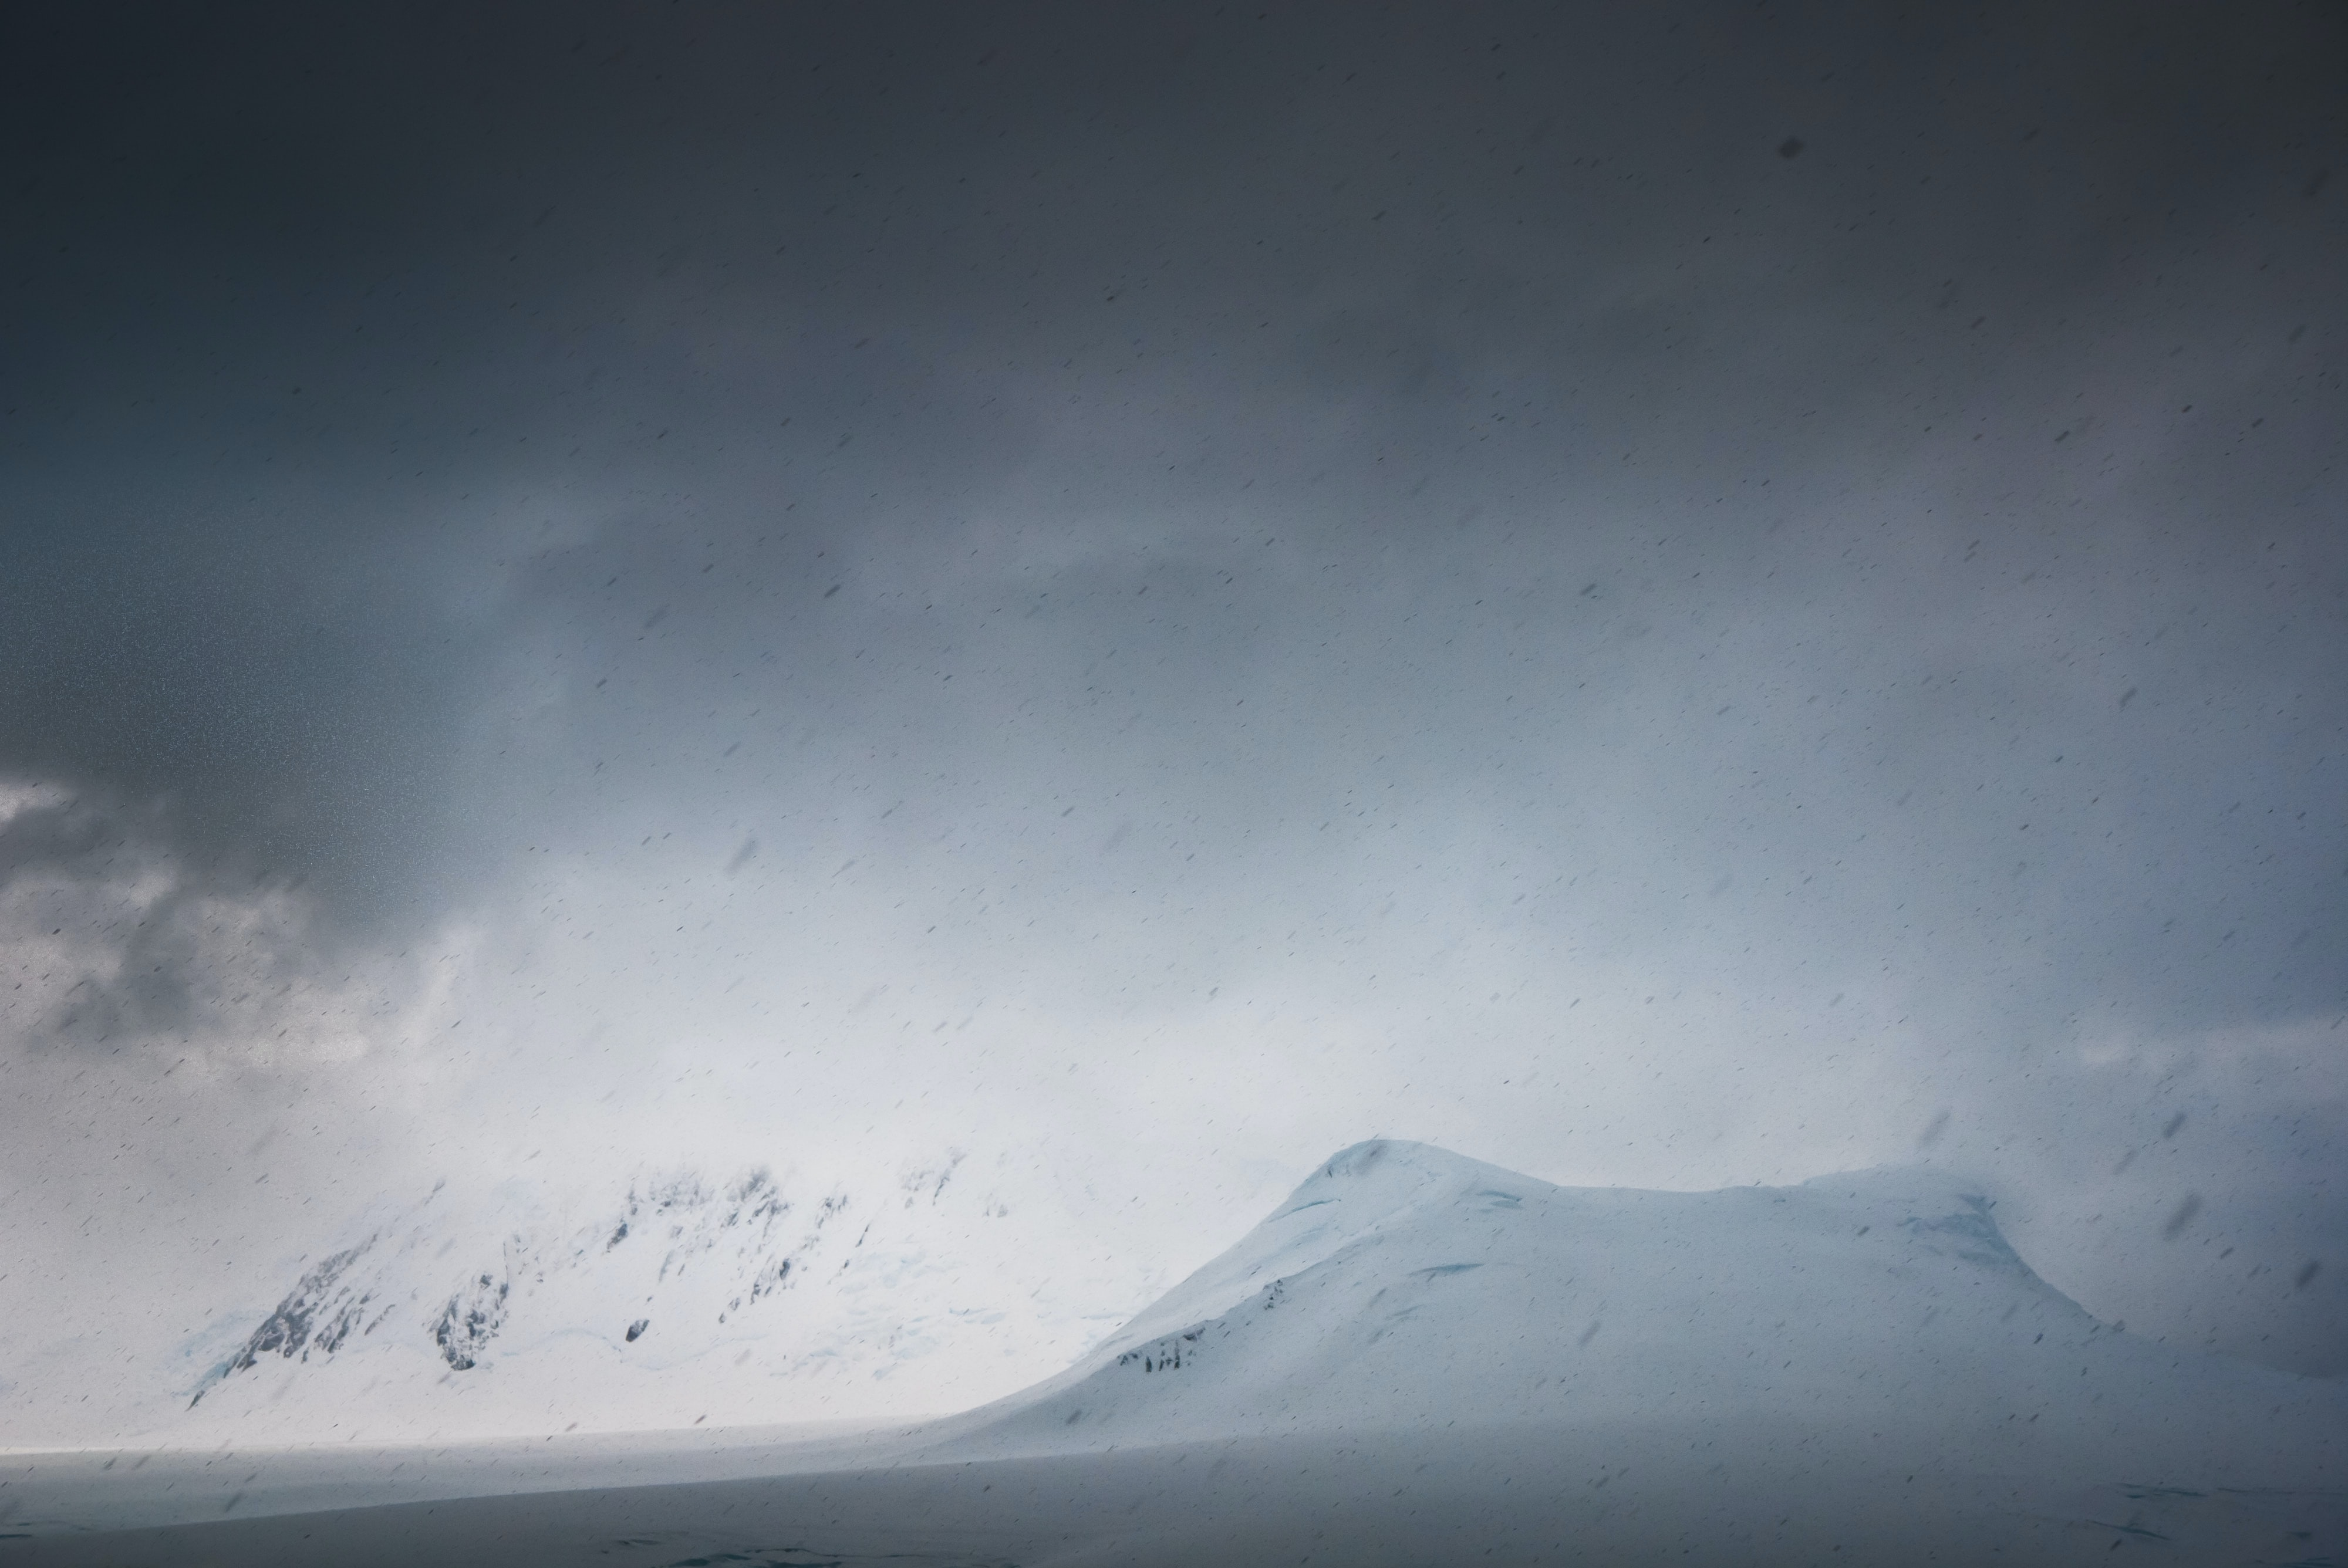 Dark storm clouds roll in over snowy mountains